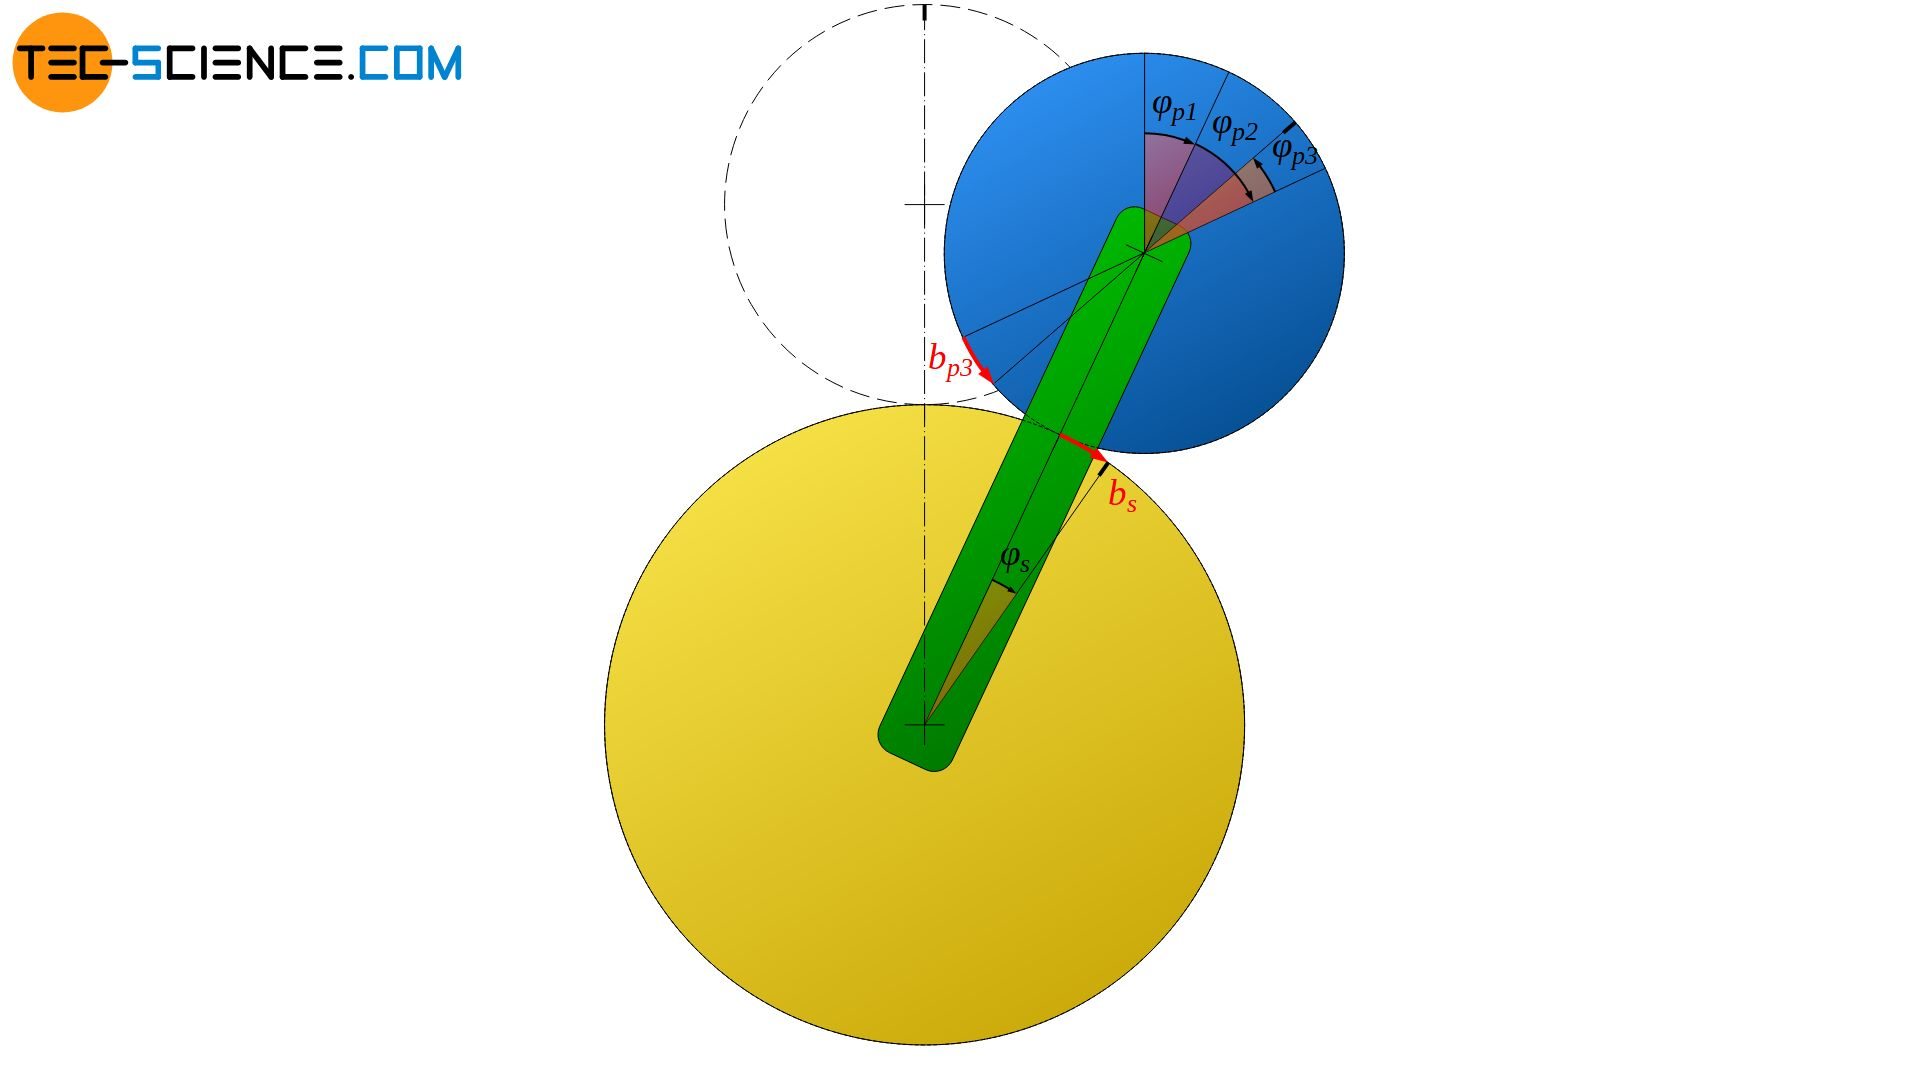 Rotation of the planet gear due to the rotation of the sun gear